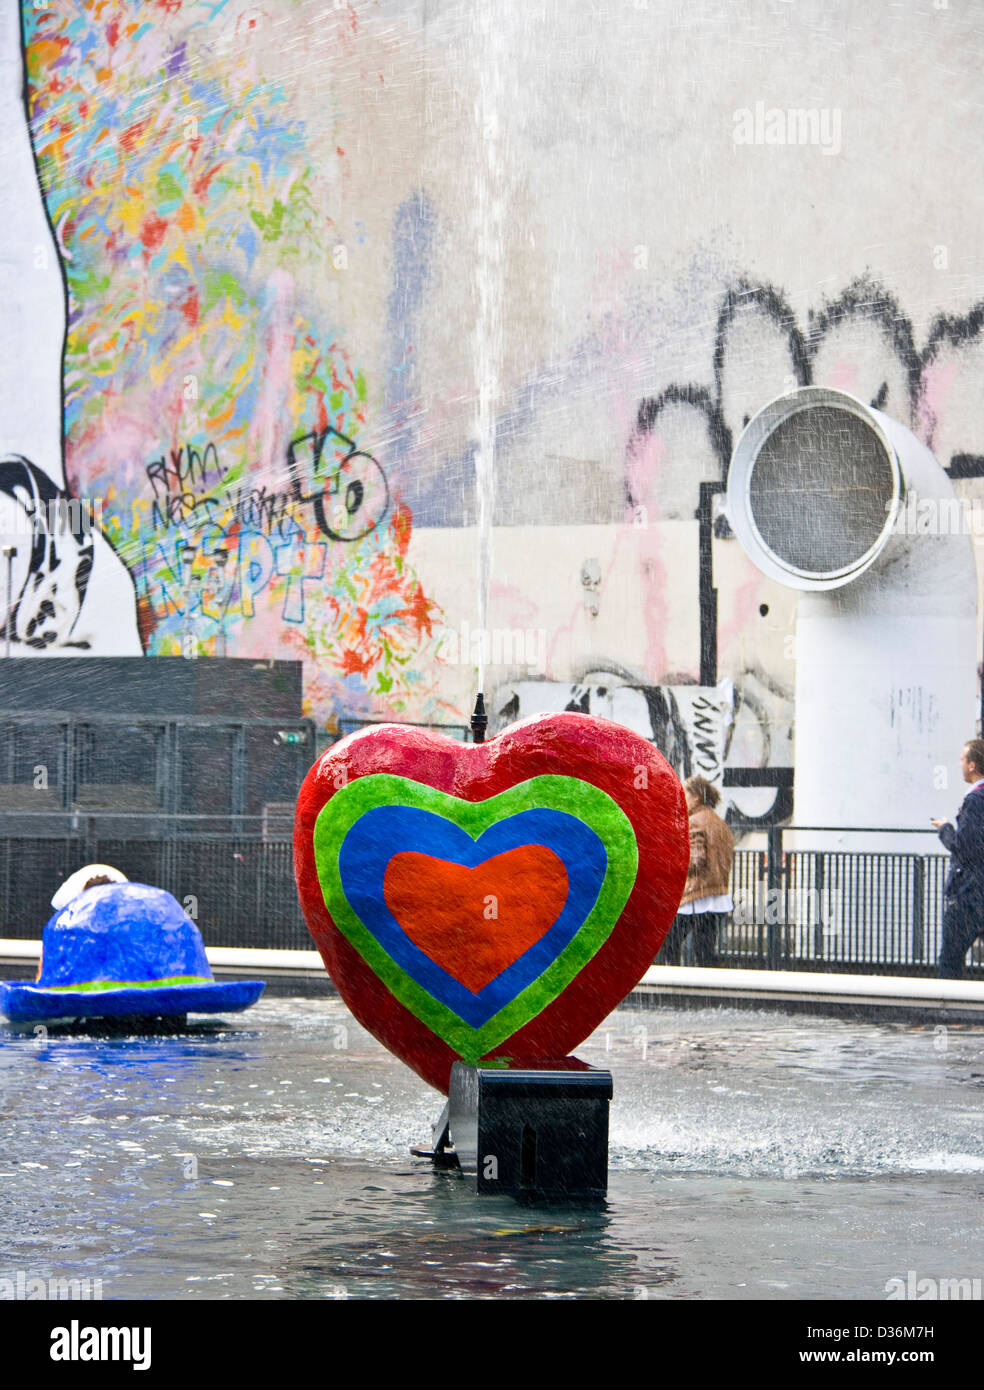 Bright colored heart sculpture stravinsky fountain place stravinsky paris france europe stock image